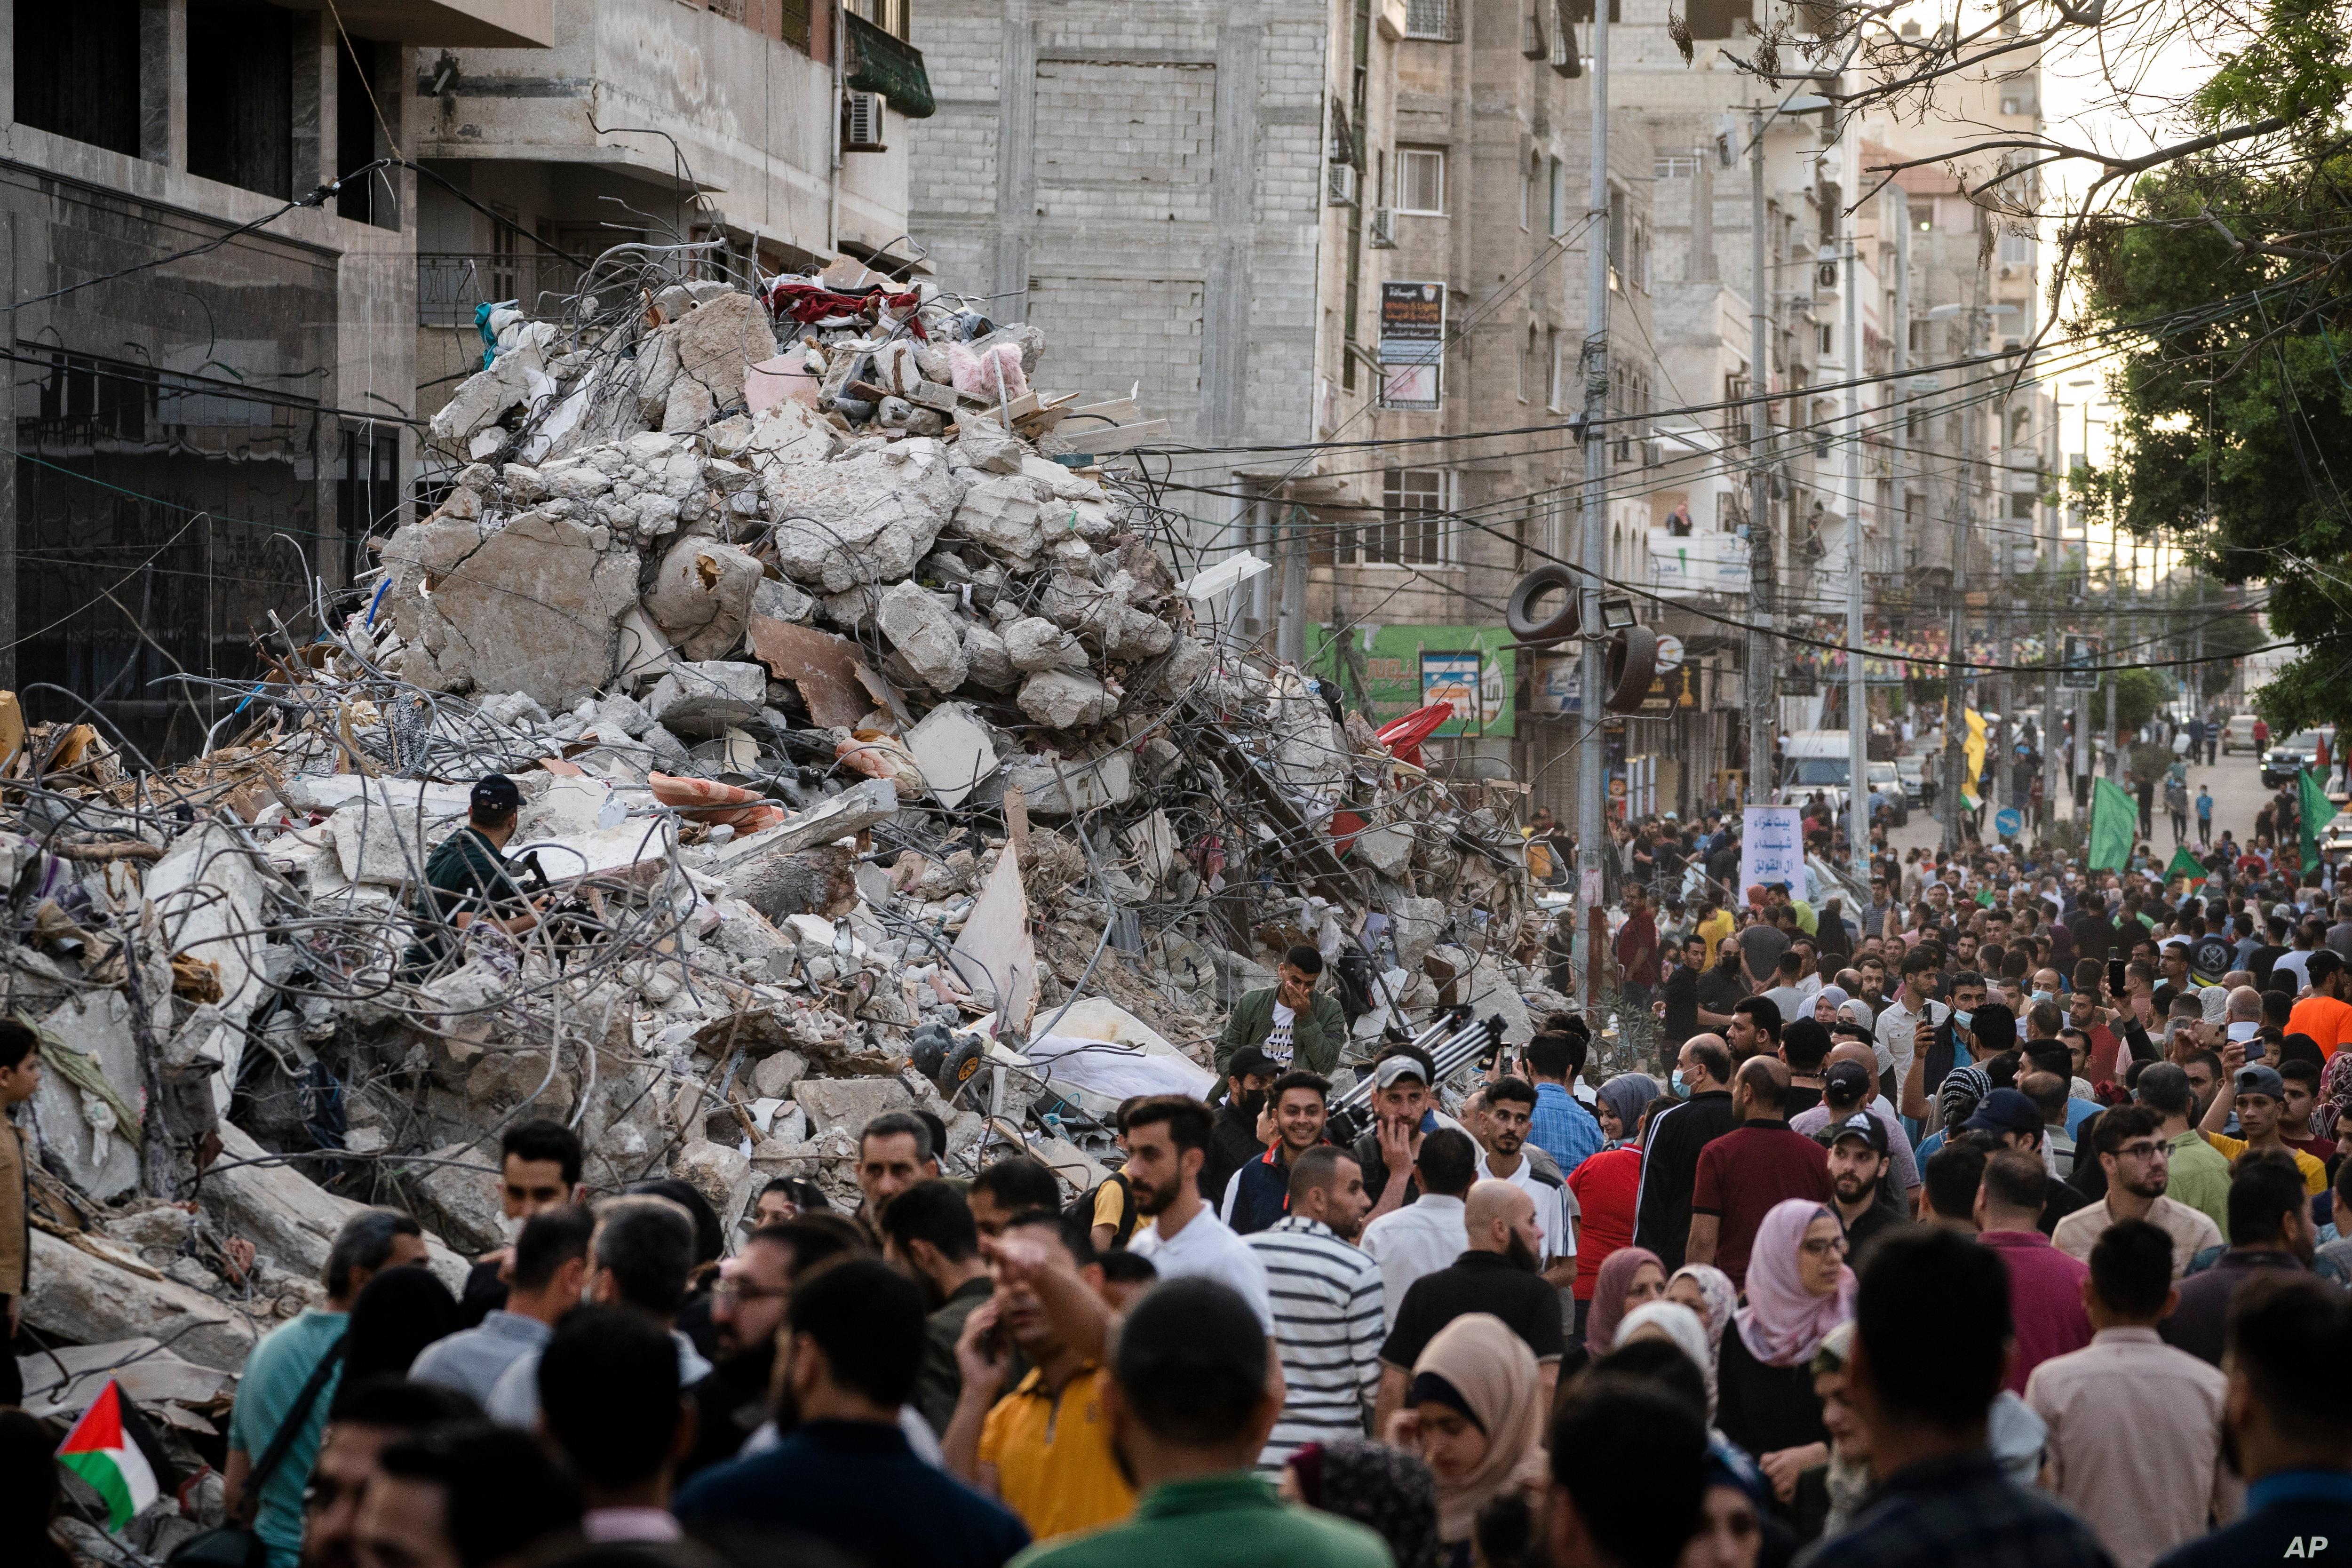 United Nations  official urges 'political process' amid Gaza reconstruction